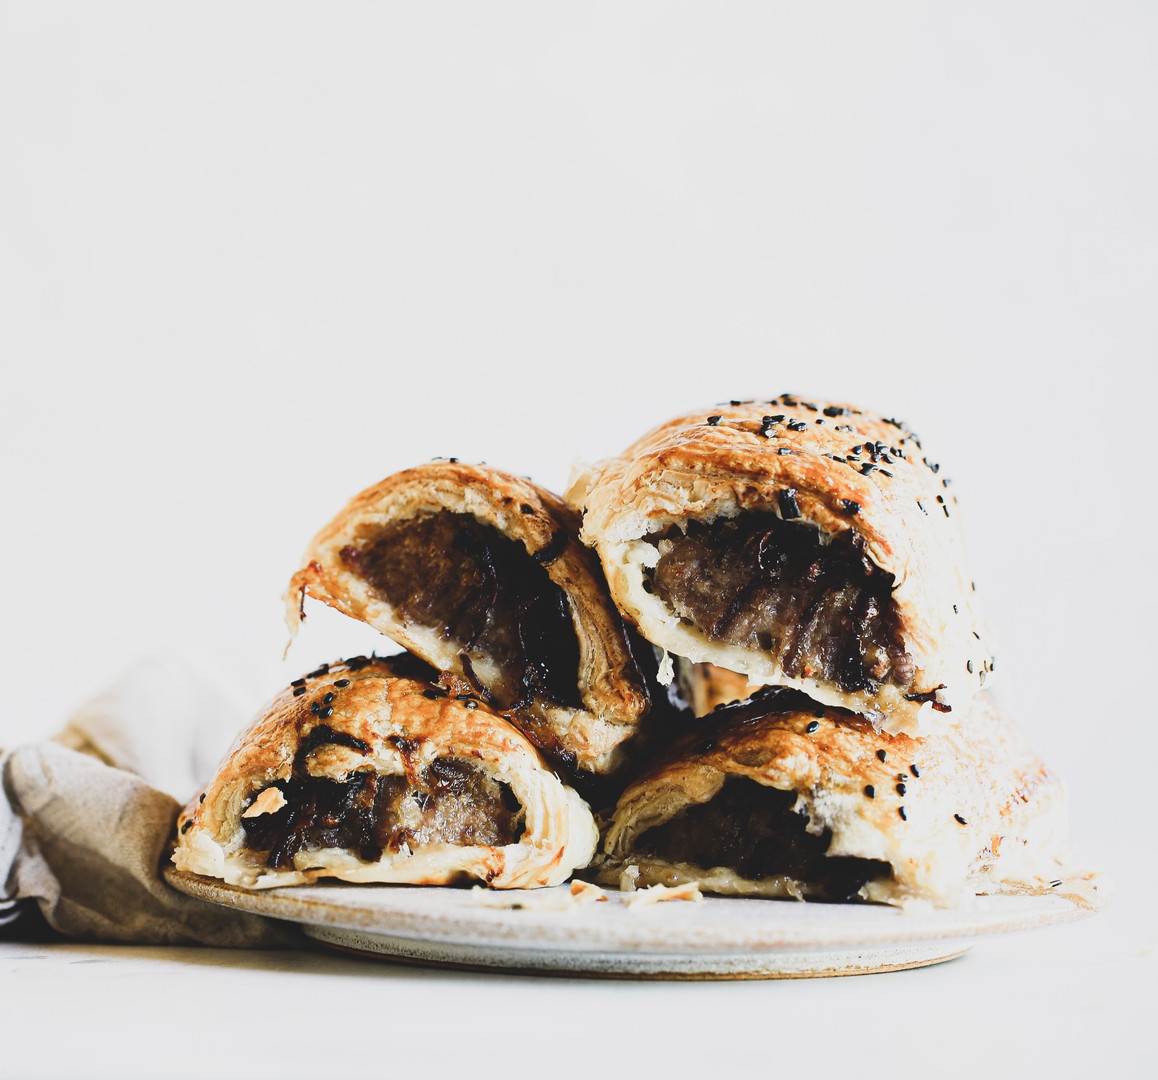 Sausage Roll with Caramalised Onion